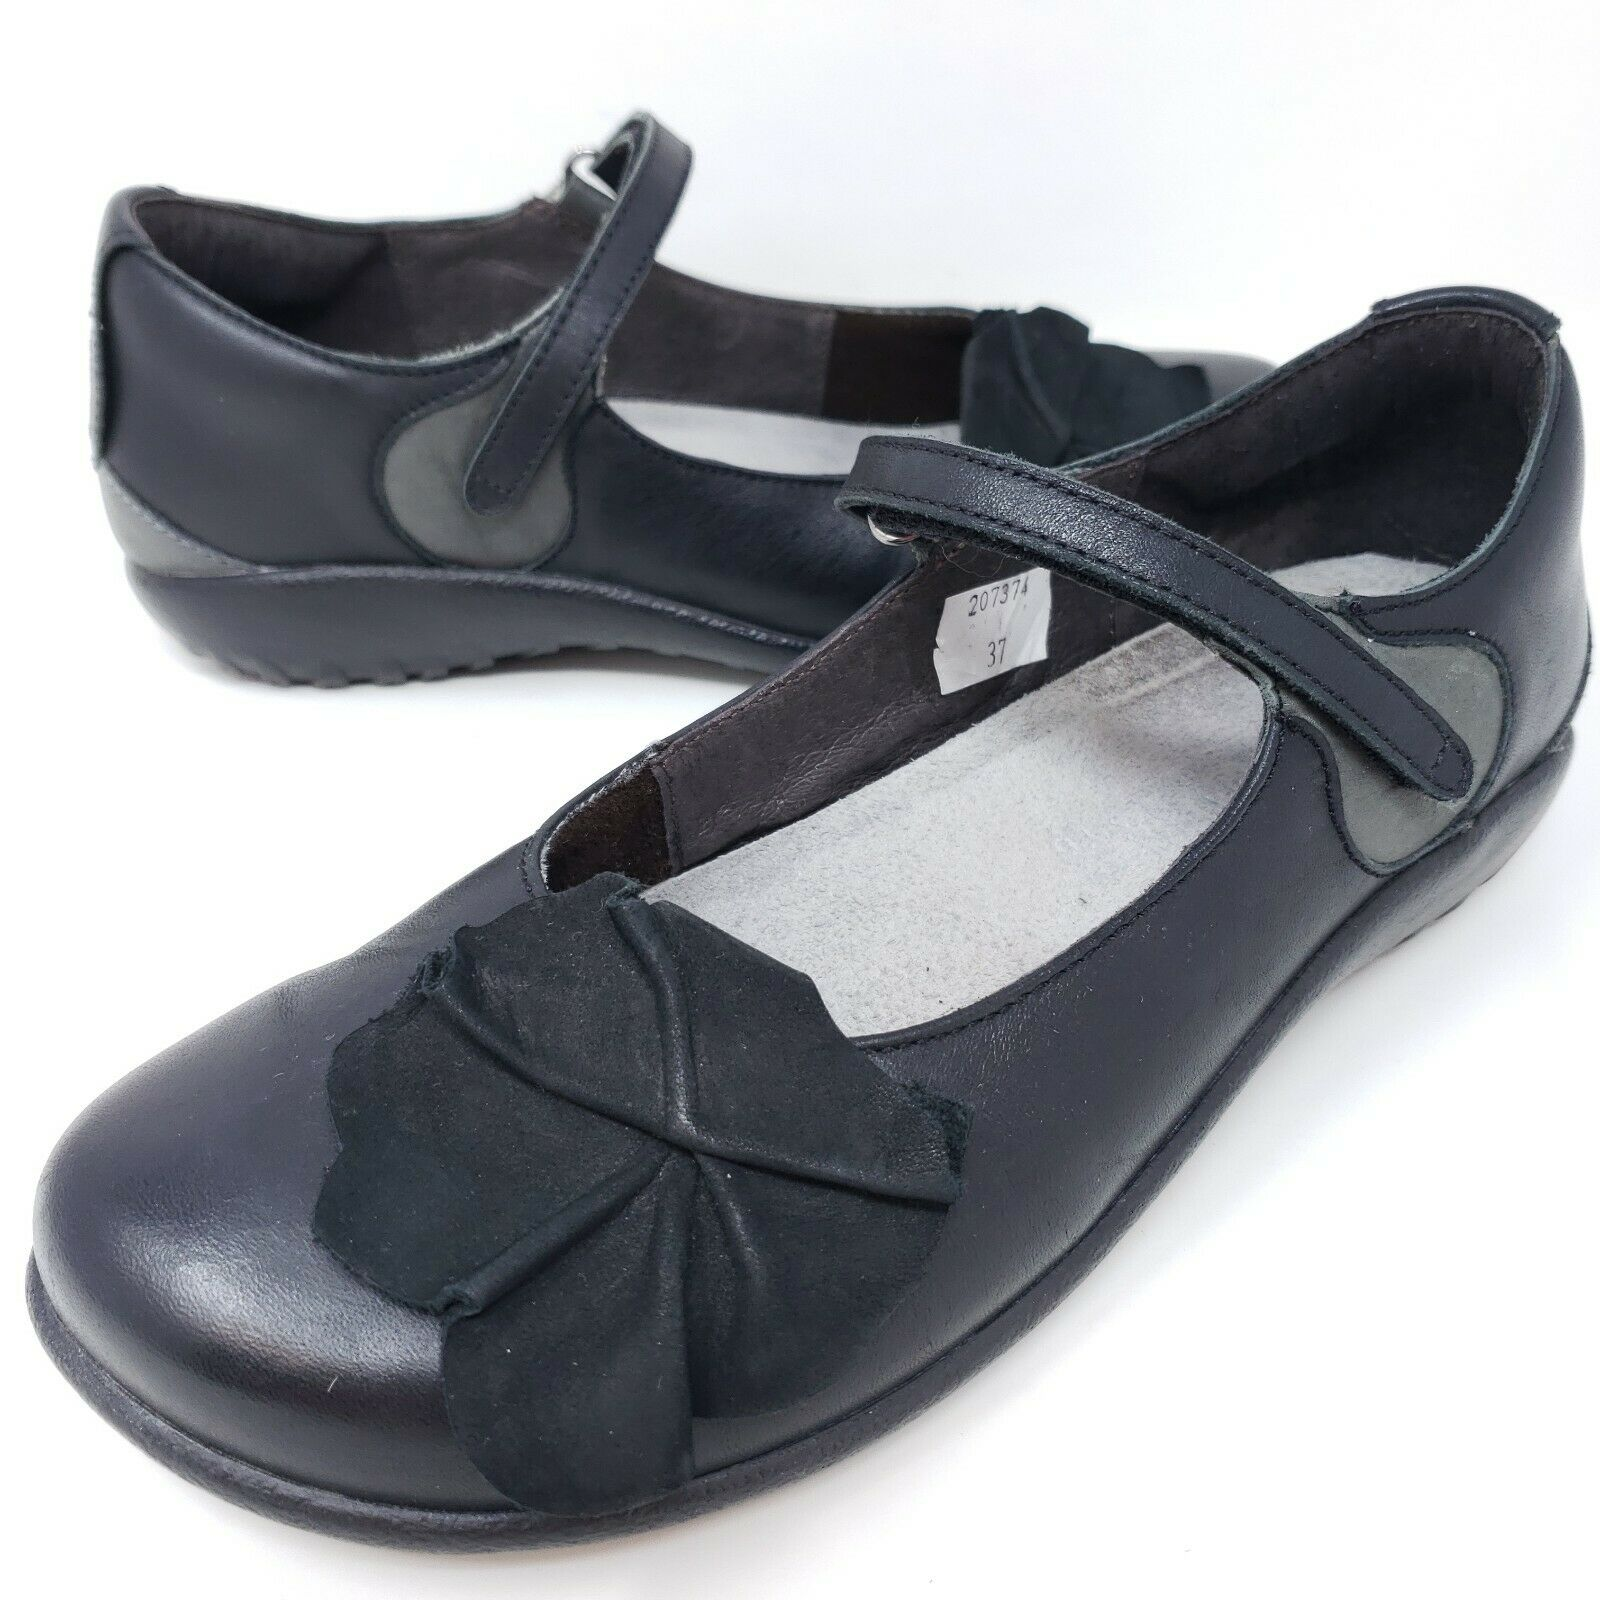 Naot Women's Mary Janes Black Leather Floral Granny Comfort Shoes Flower Sz 6